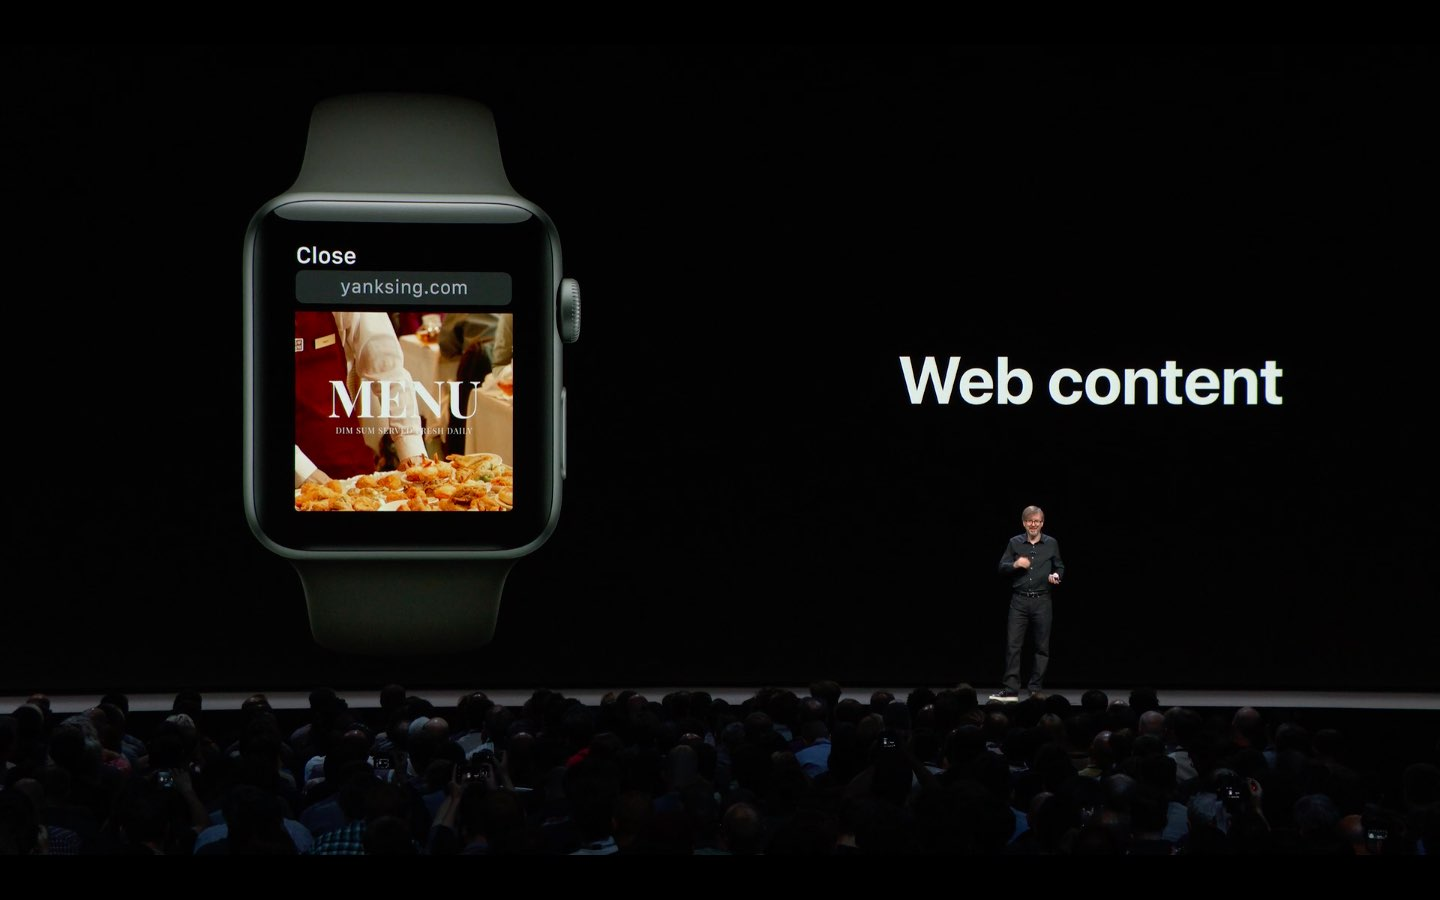 To view web content on Apple Watch, email yourself a link to the website you'd like to view via Mail or iMessage